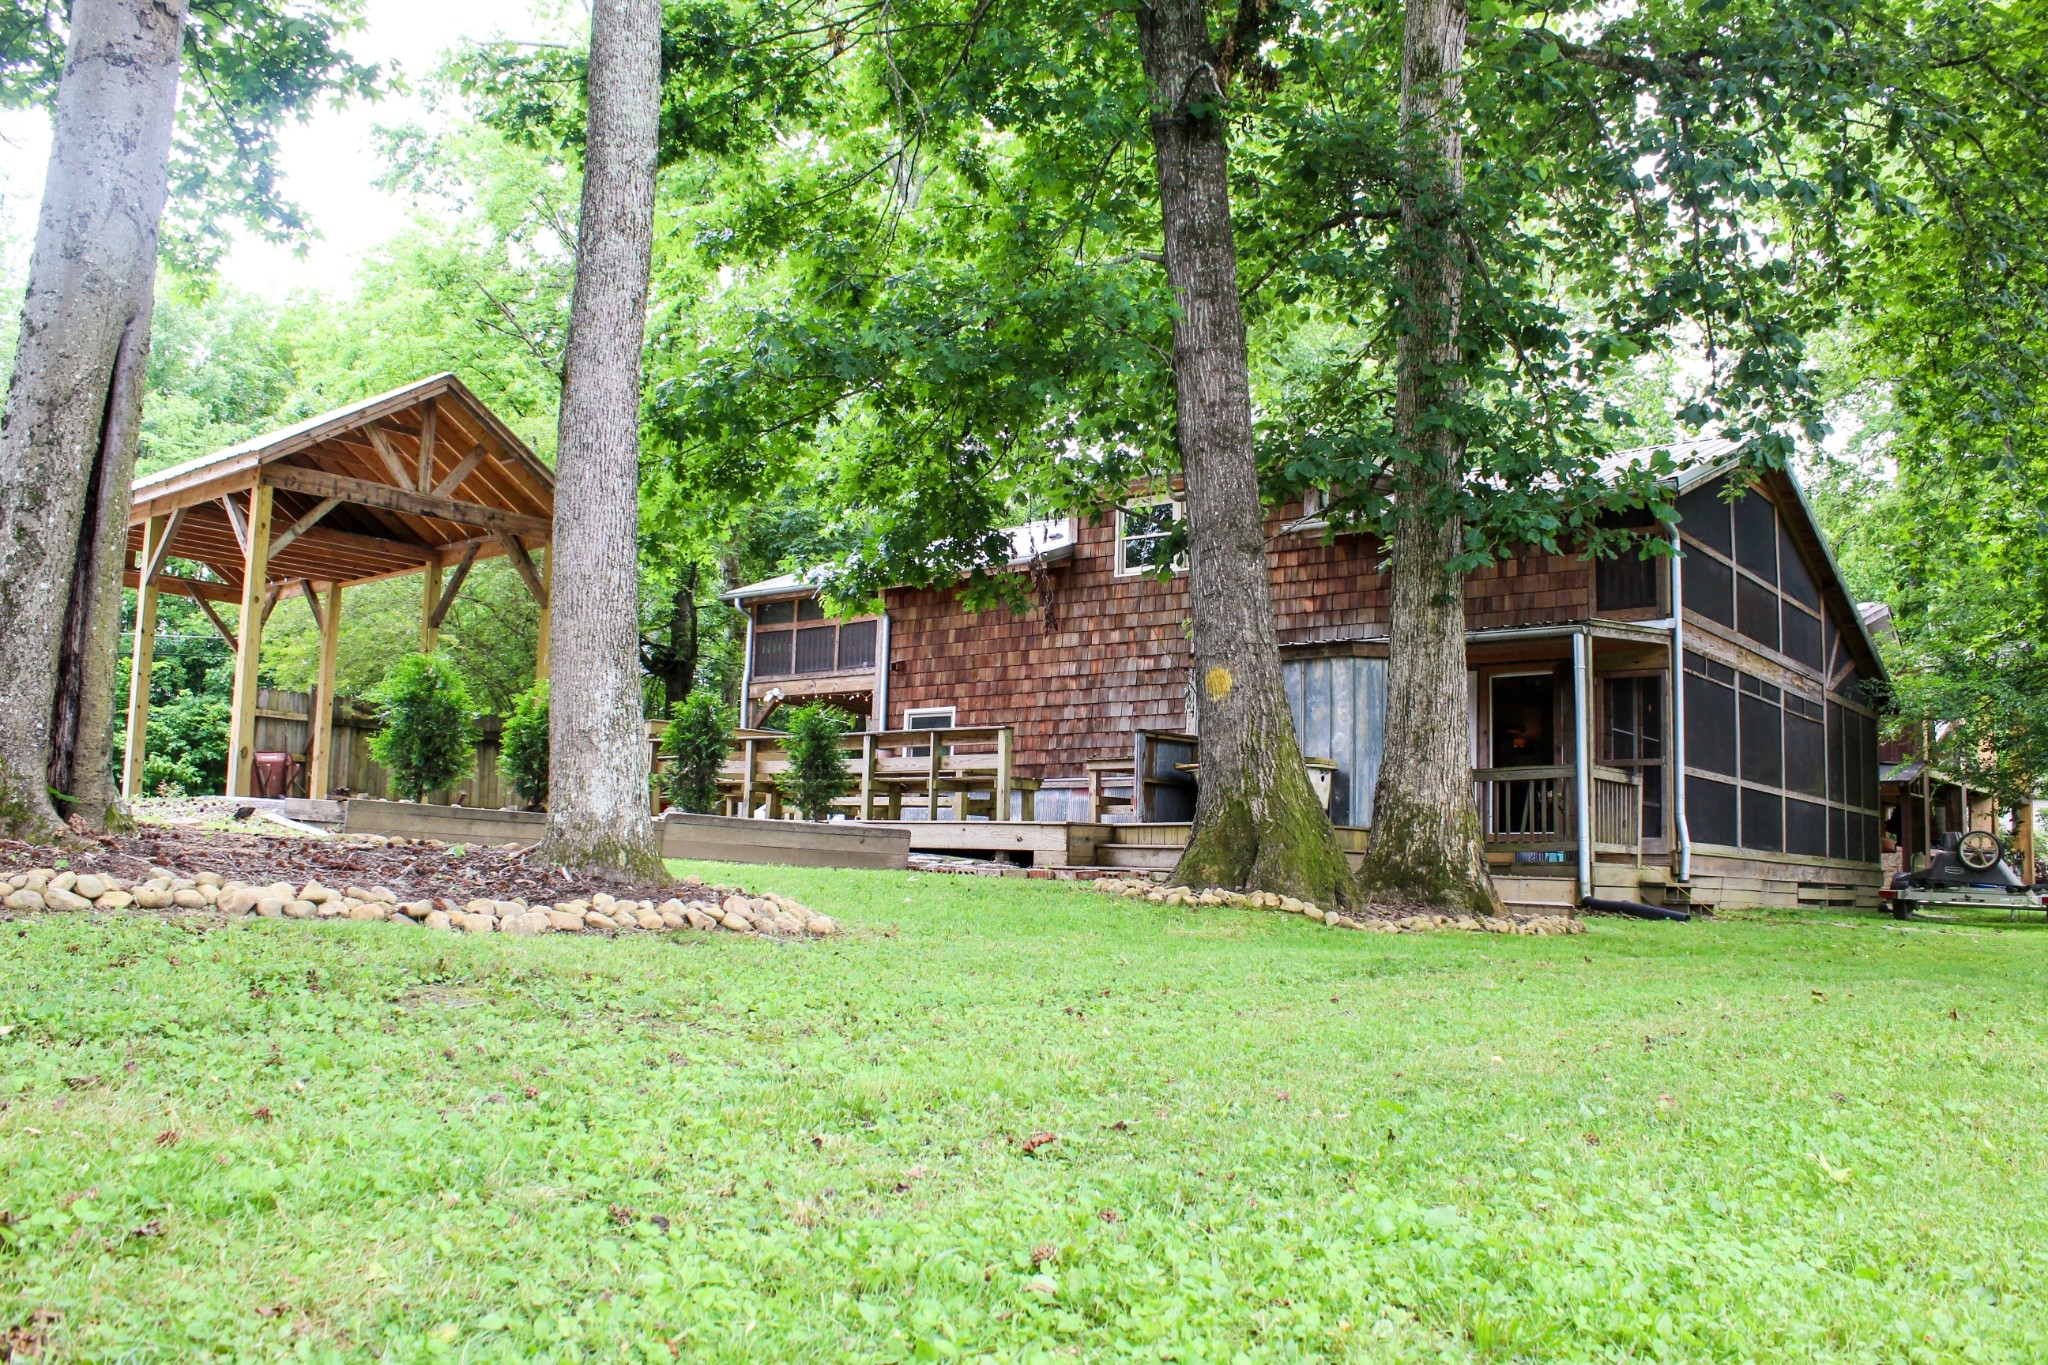 1419 Chapmansboro Rd Property Photo - Chapmansboro, TN real estate listing